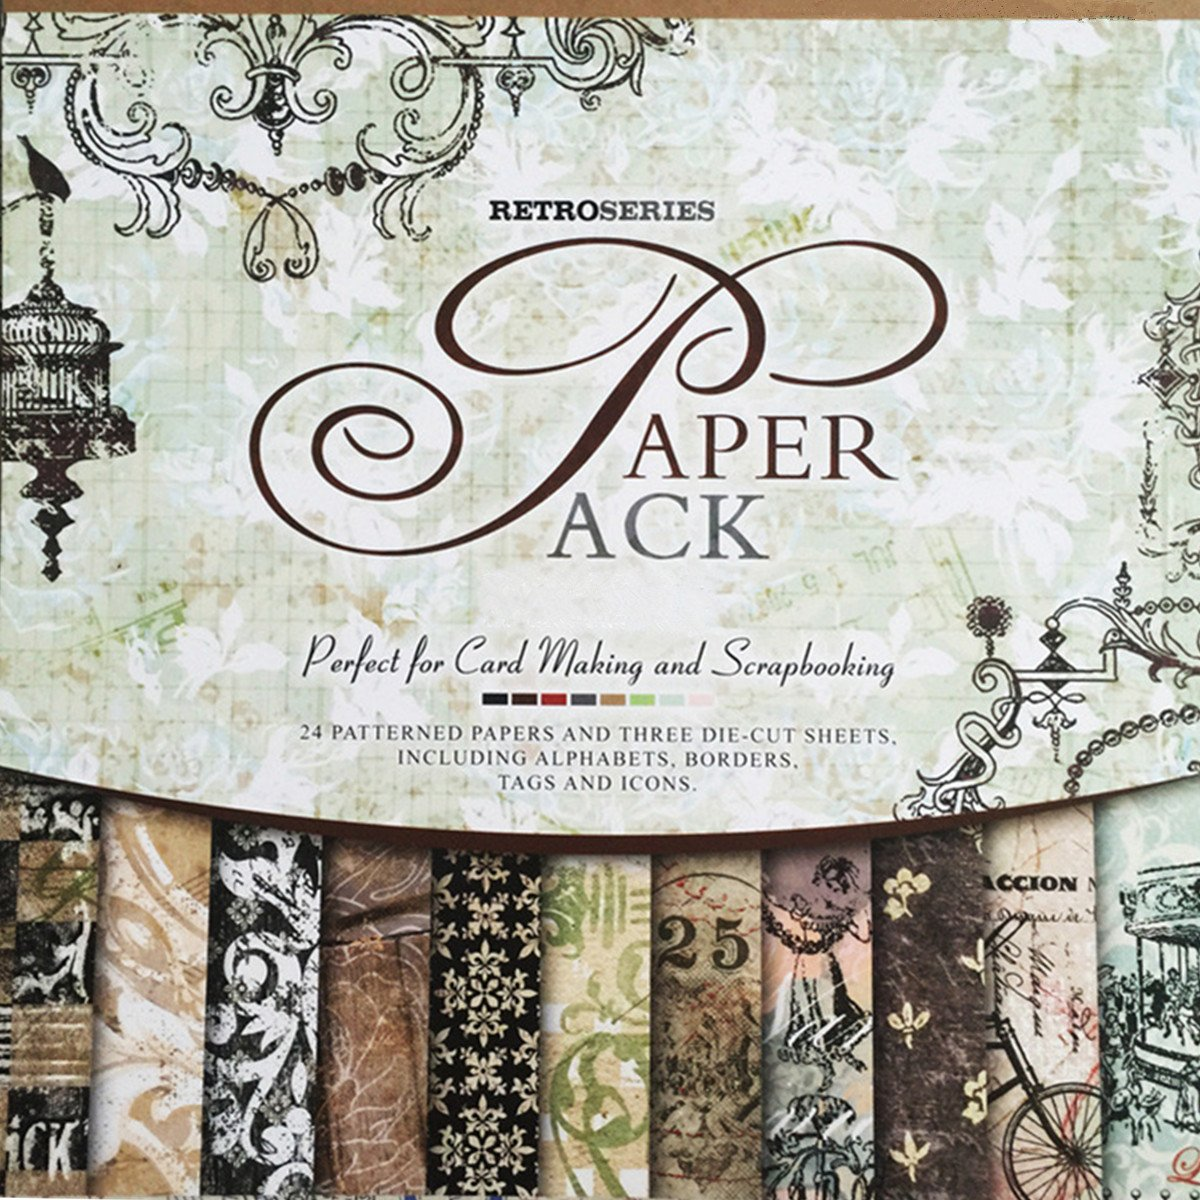 27 Sheets Vintage Paper Pad 12'' x 12'' Classic Origami Scrapbooking Wrapping Book Craft DIY Card making Damask Art Alphabet/Photo Frame Album Creative Handmade Decorative Die Cuts Background by S&B Collection